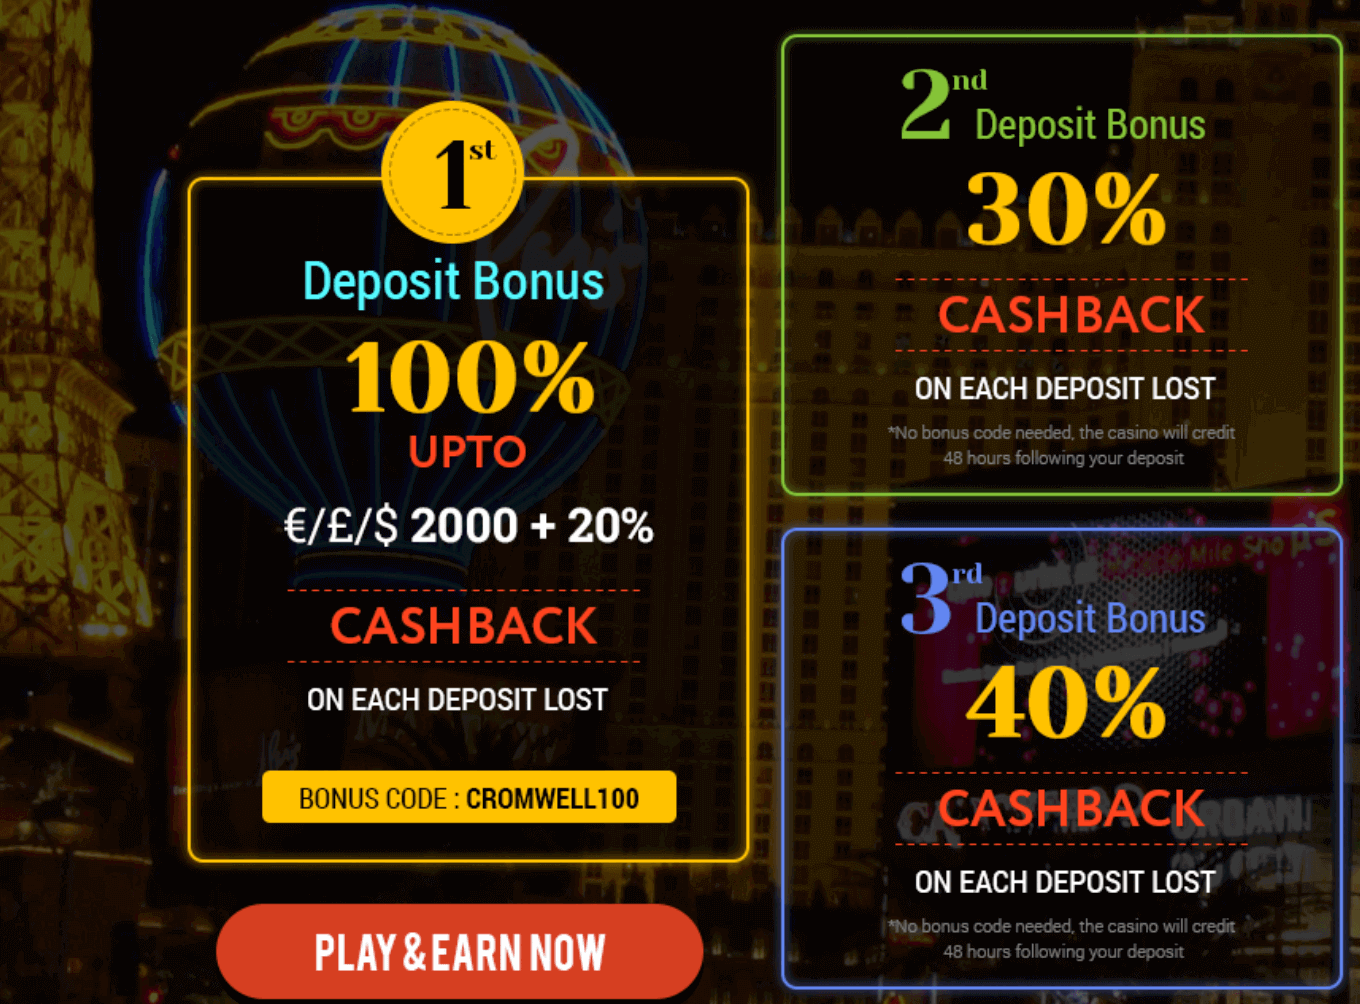 ★ Grab a 30% Cashback Second Deposit Bonus at Cromwell Casino